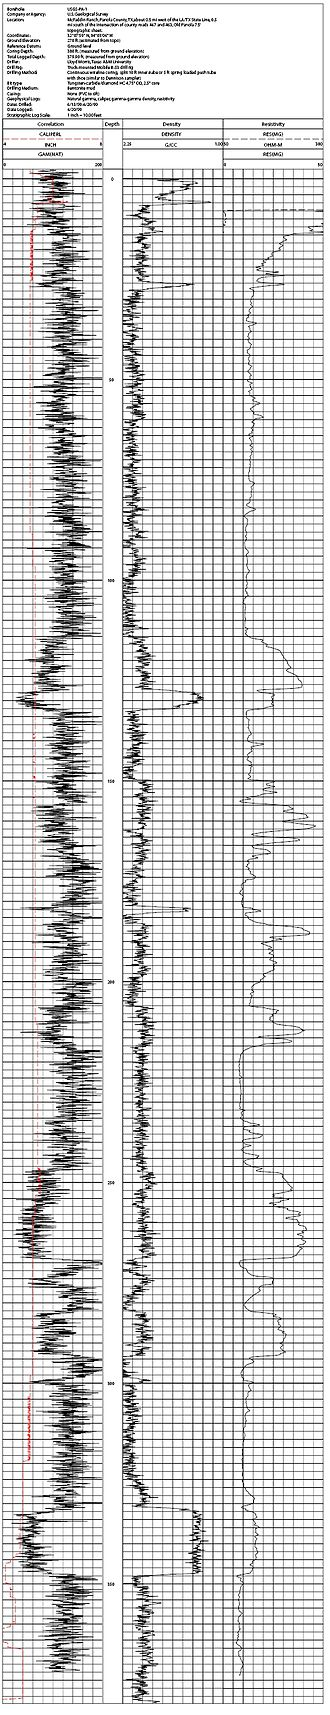 Well logging - Wireline log consisting of caliper, density and resistivity logs